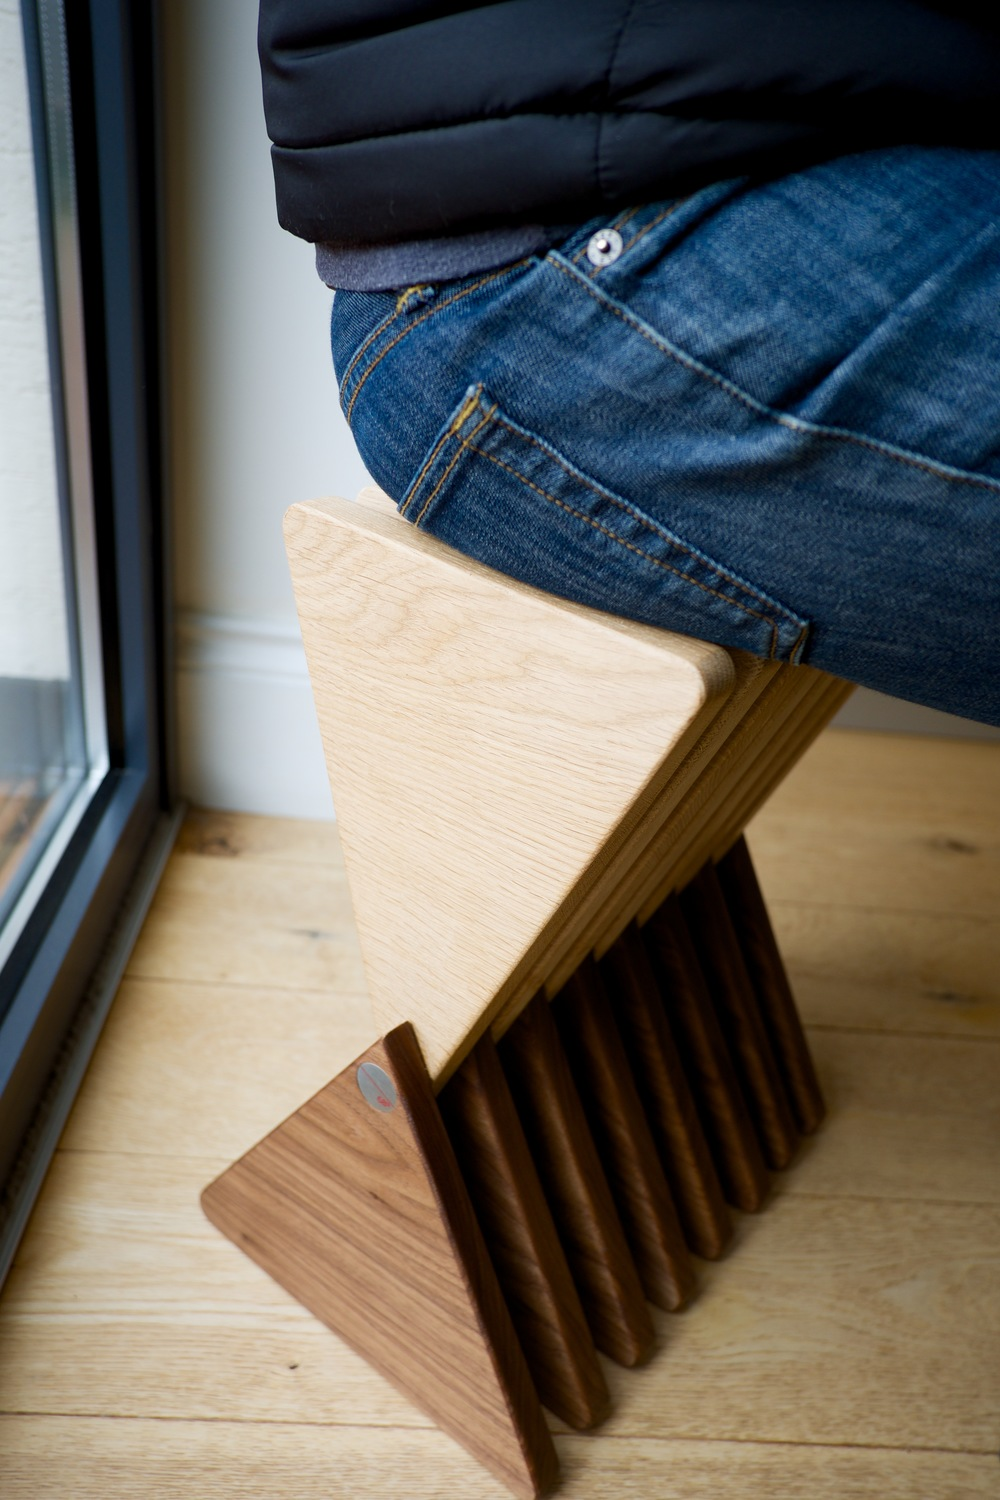 The Vinci Stool - Seating mode